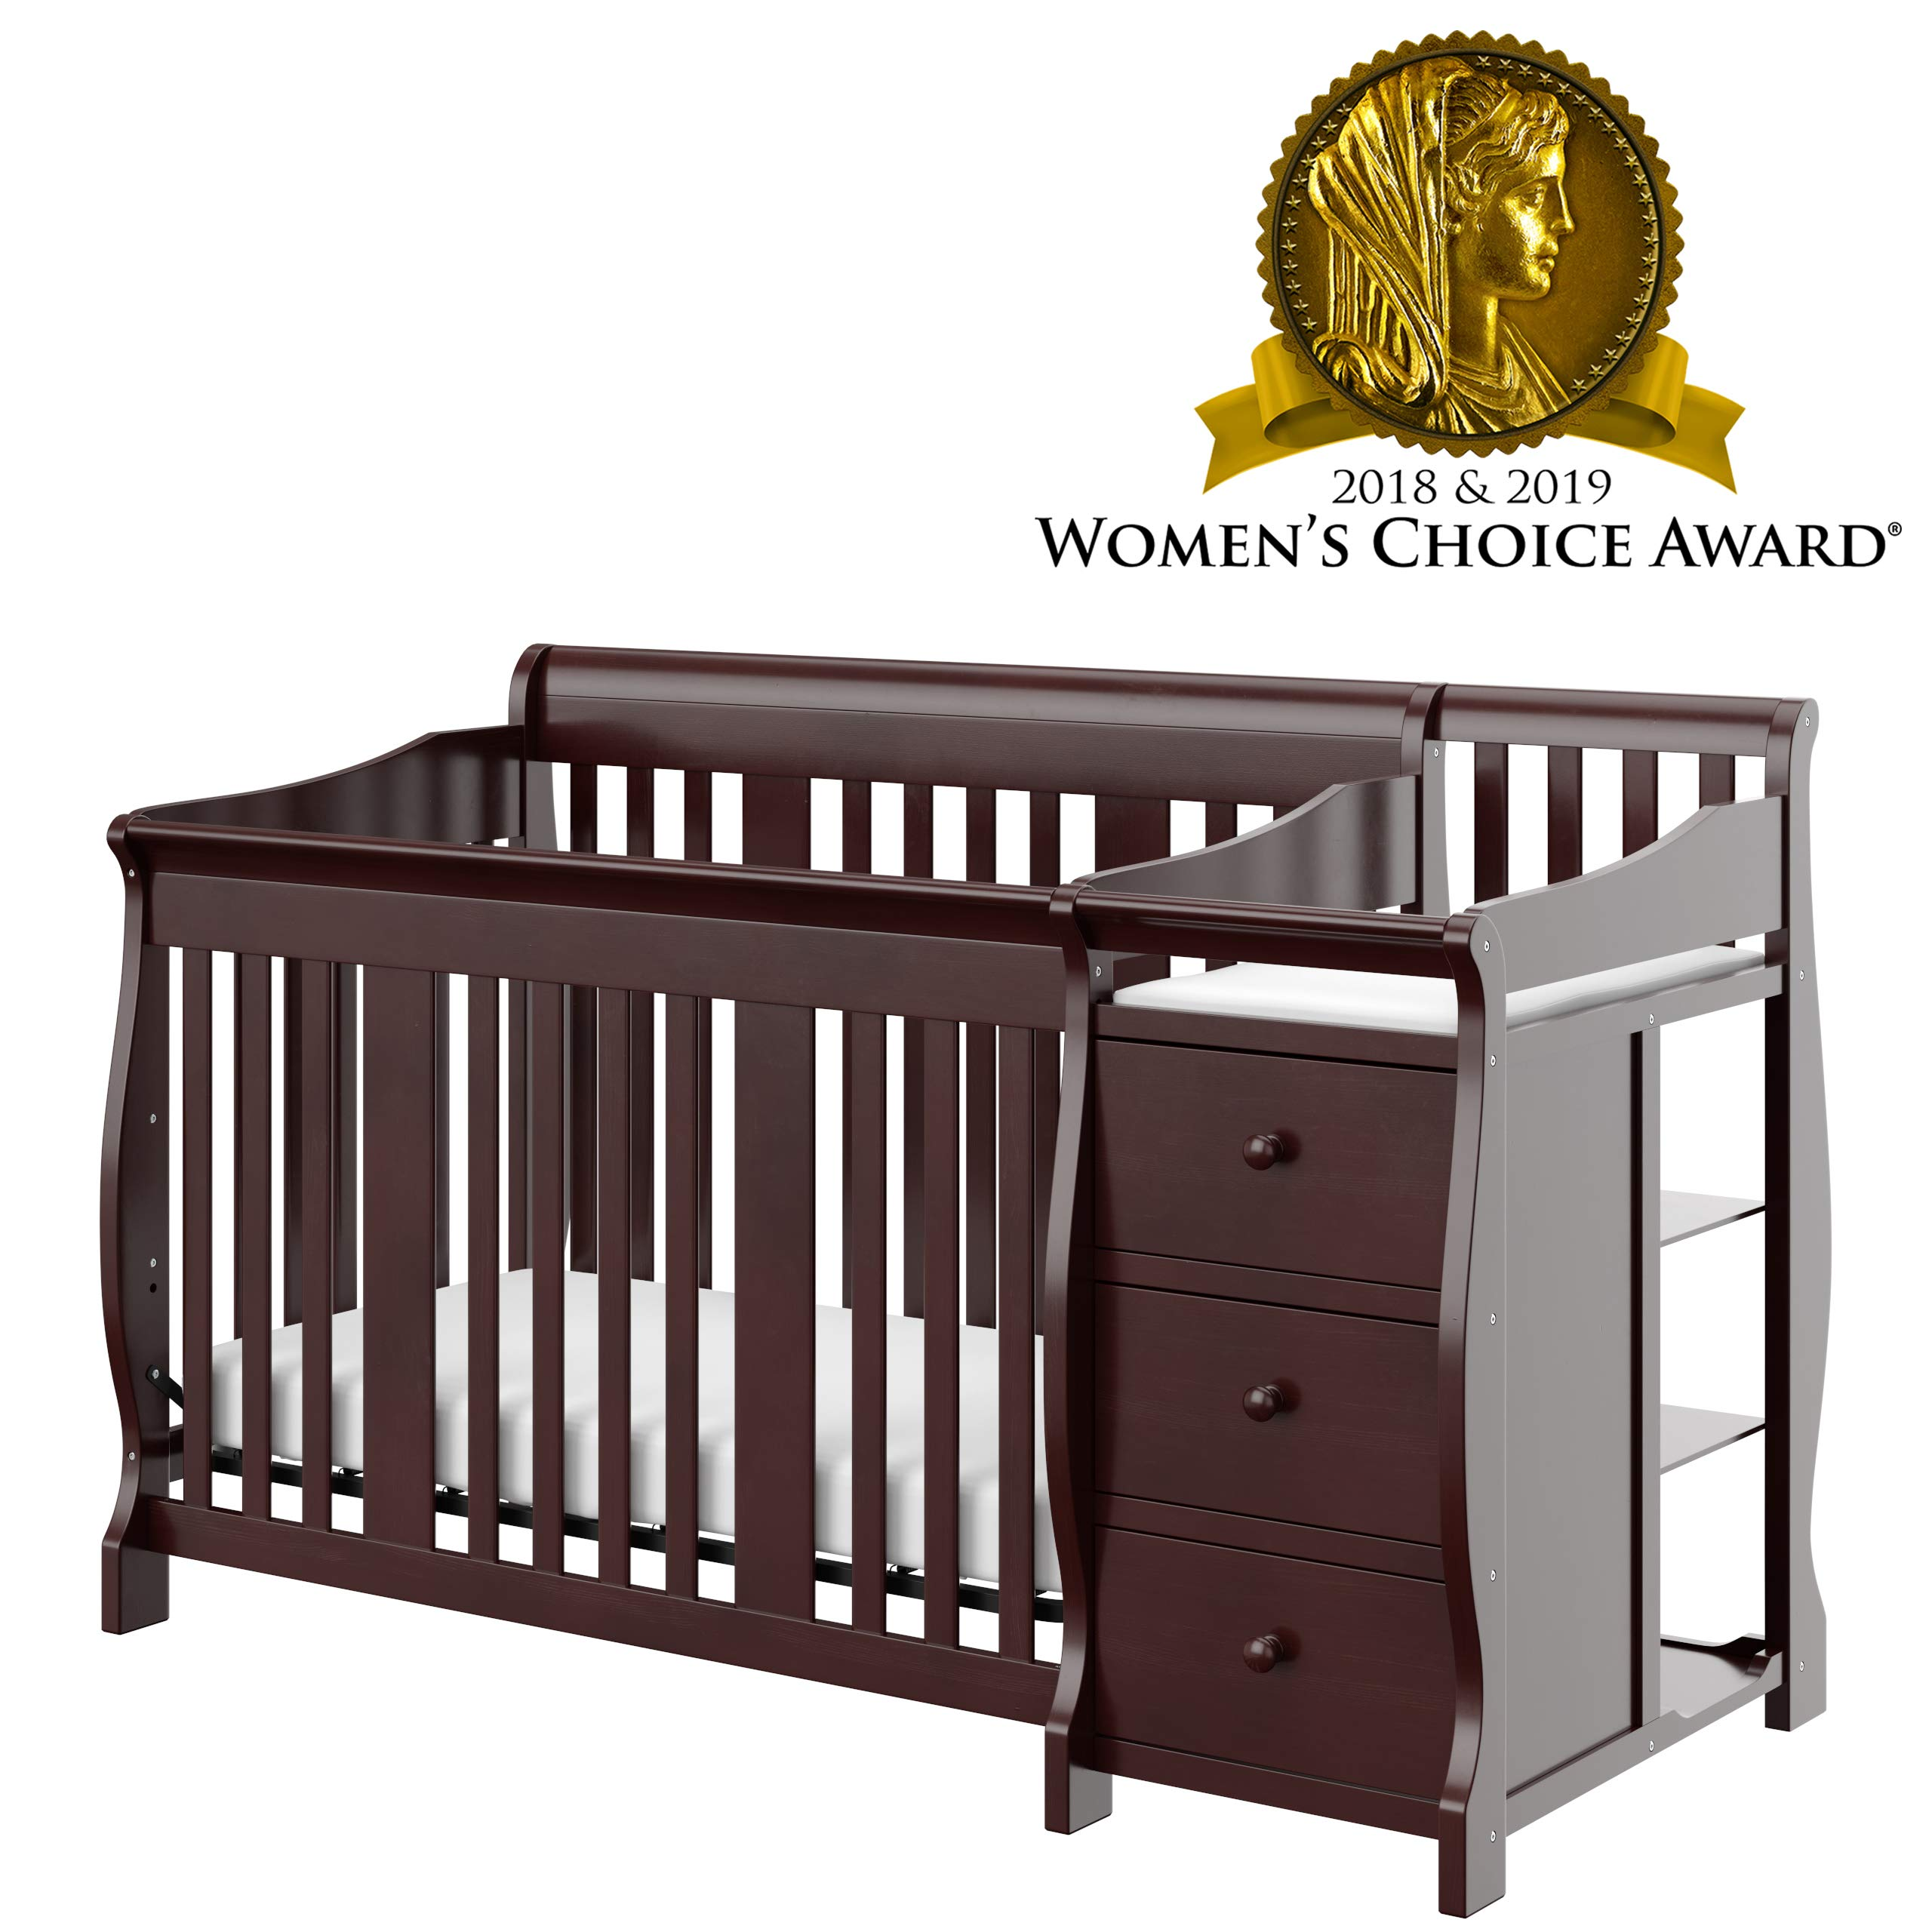 Storkcraft Portofino 4-in-1 Fixed Side Convertible Crib and Changer, Espresso, Easily Converts to Toddler Bed Day Bed or Full Bed, Three Position Adjustable Height Mattress (Mattress Not Included) by Storkcraft